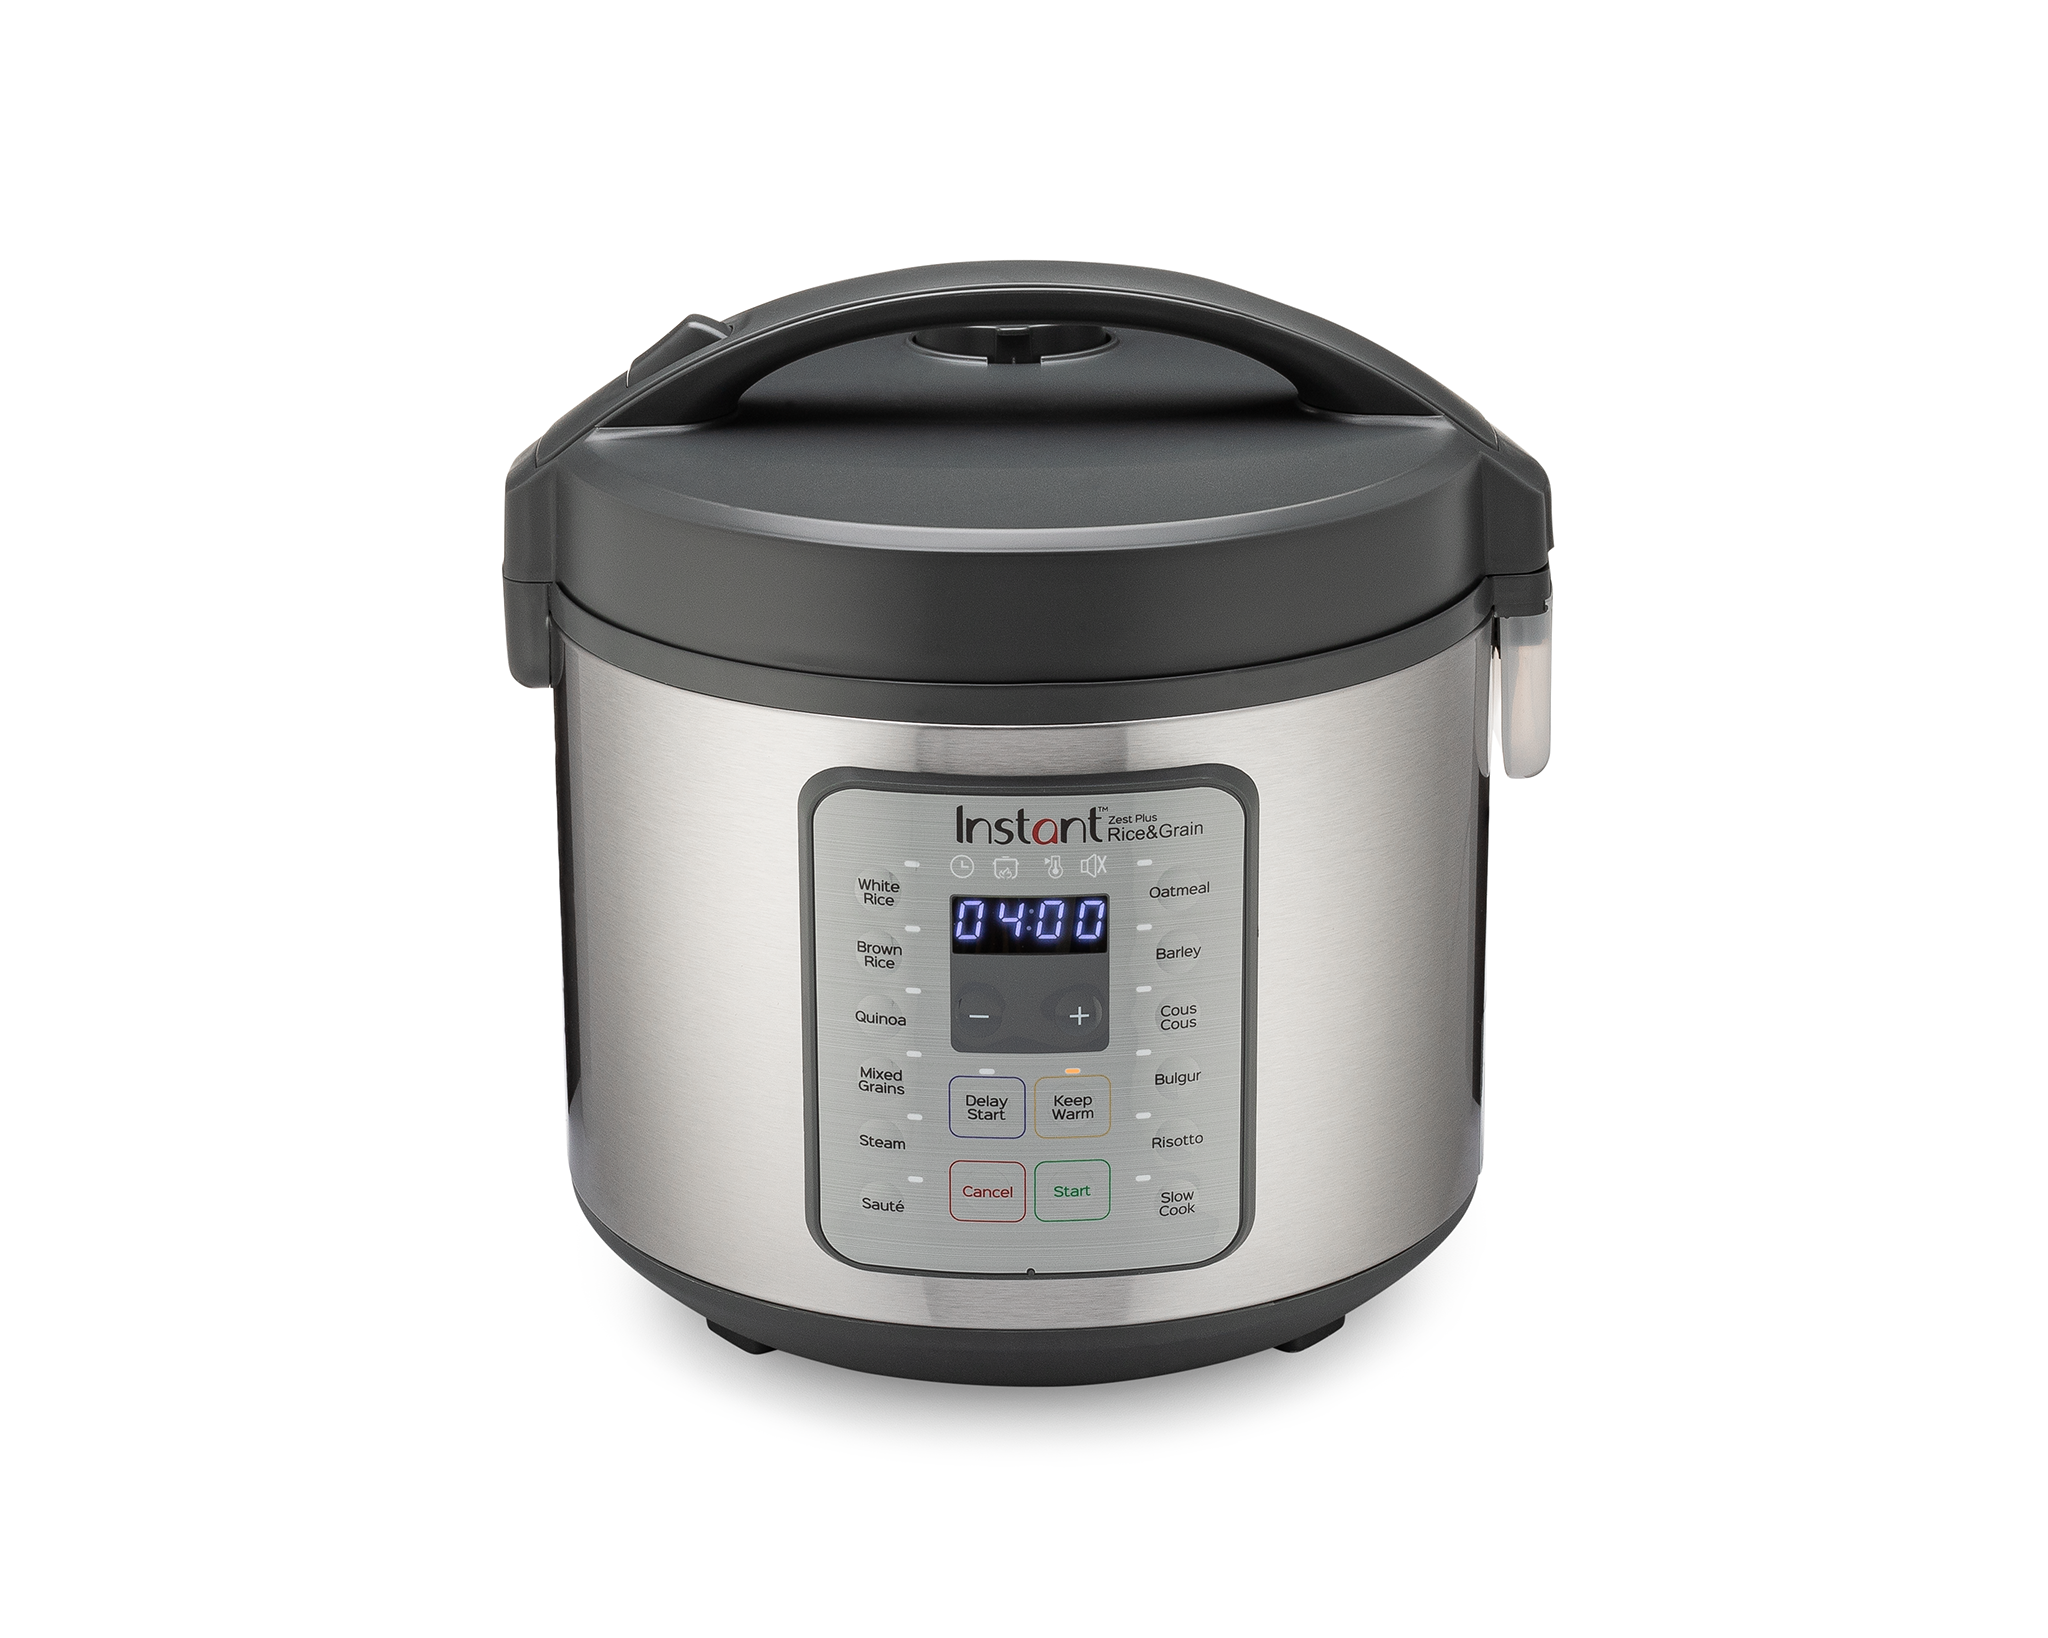 Instant Zest Plus 20-cup Rice and Grain Cooker